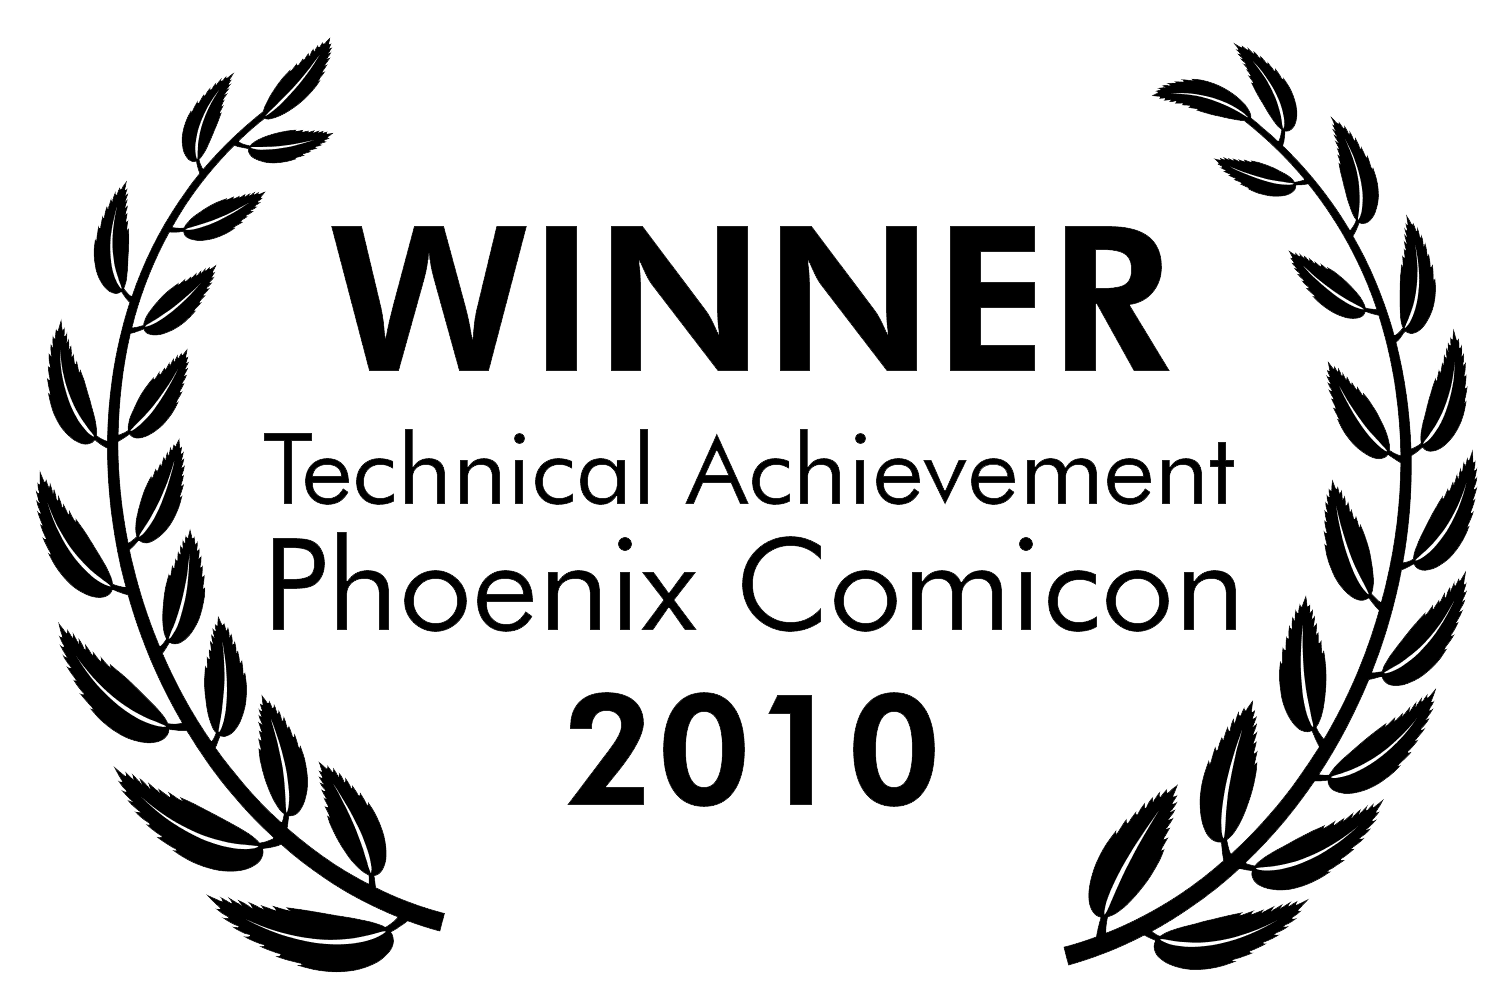 PIA-Laurel-Phx-TechnicalAchievement-transparent.png